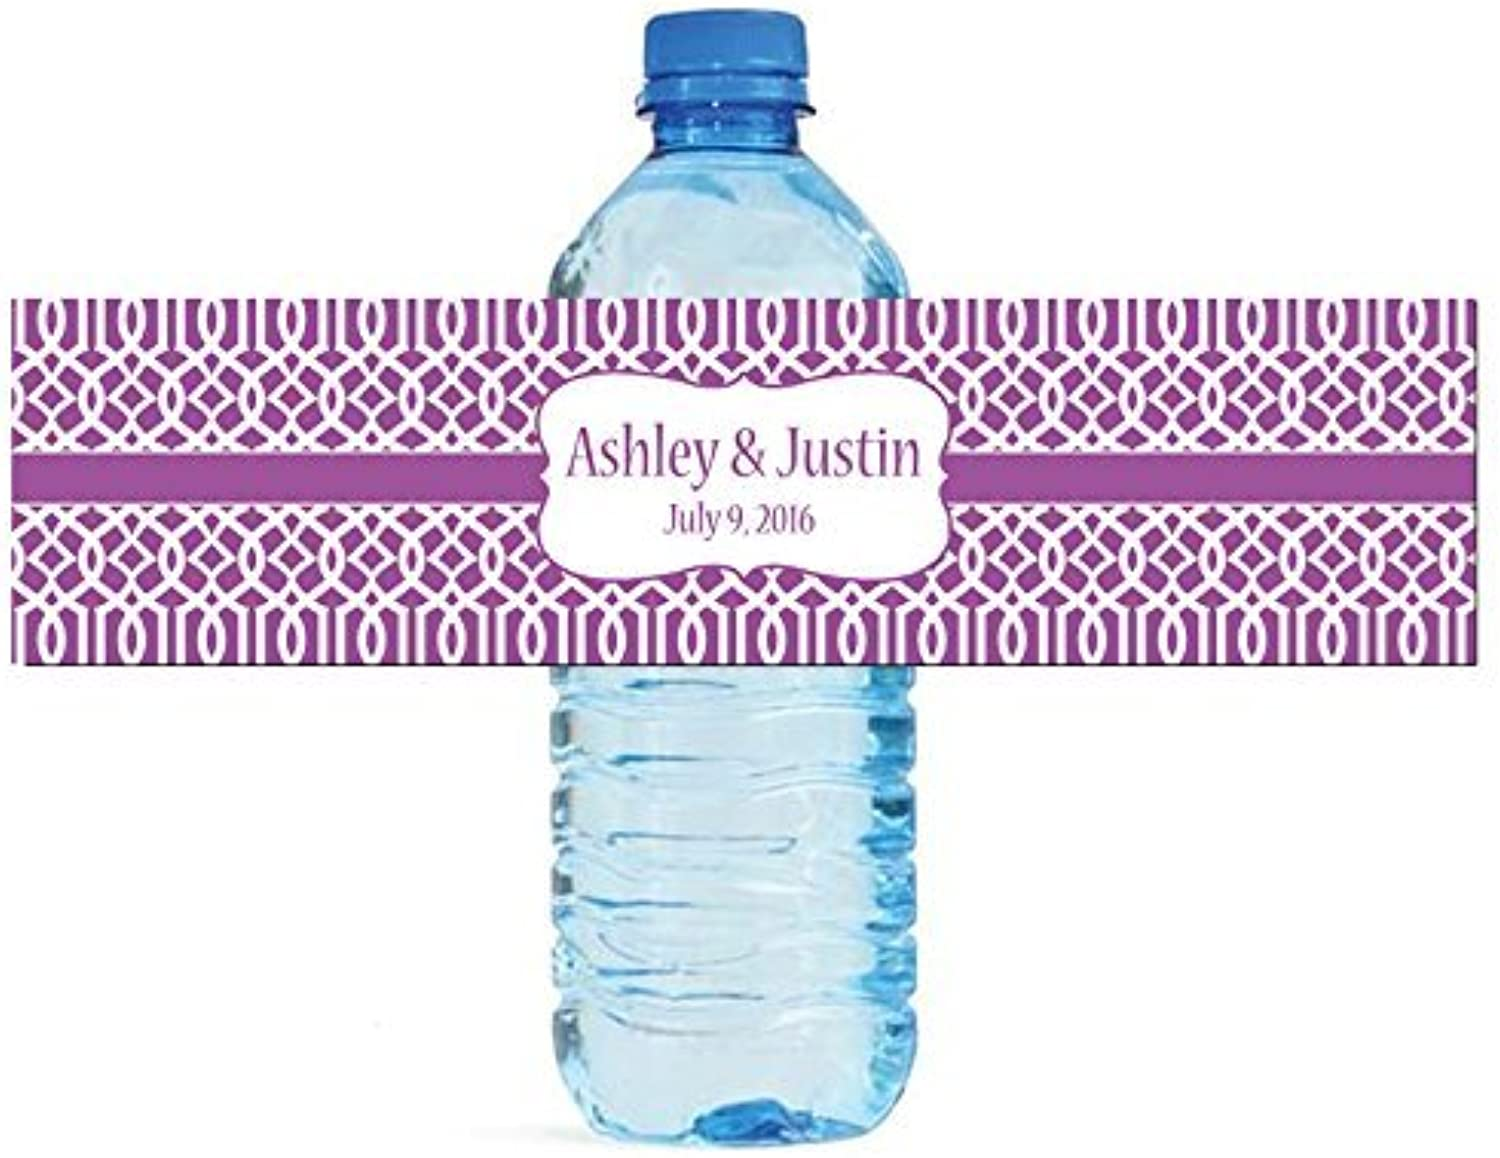 100 Purple Trellis Mgoldccan Background Wedding Water Bottle Labels Engagement Party 8x2 by DesignThatSign